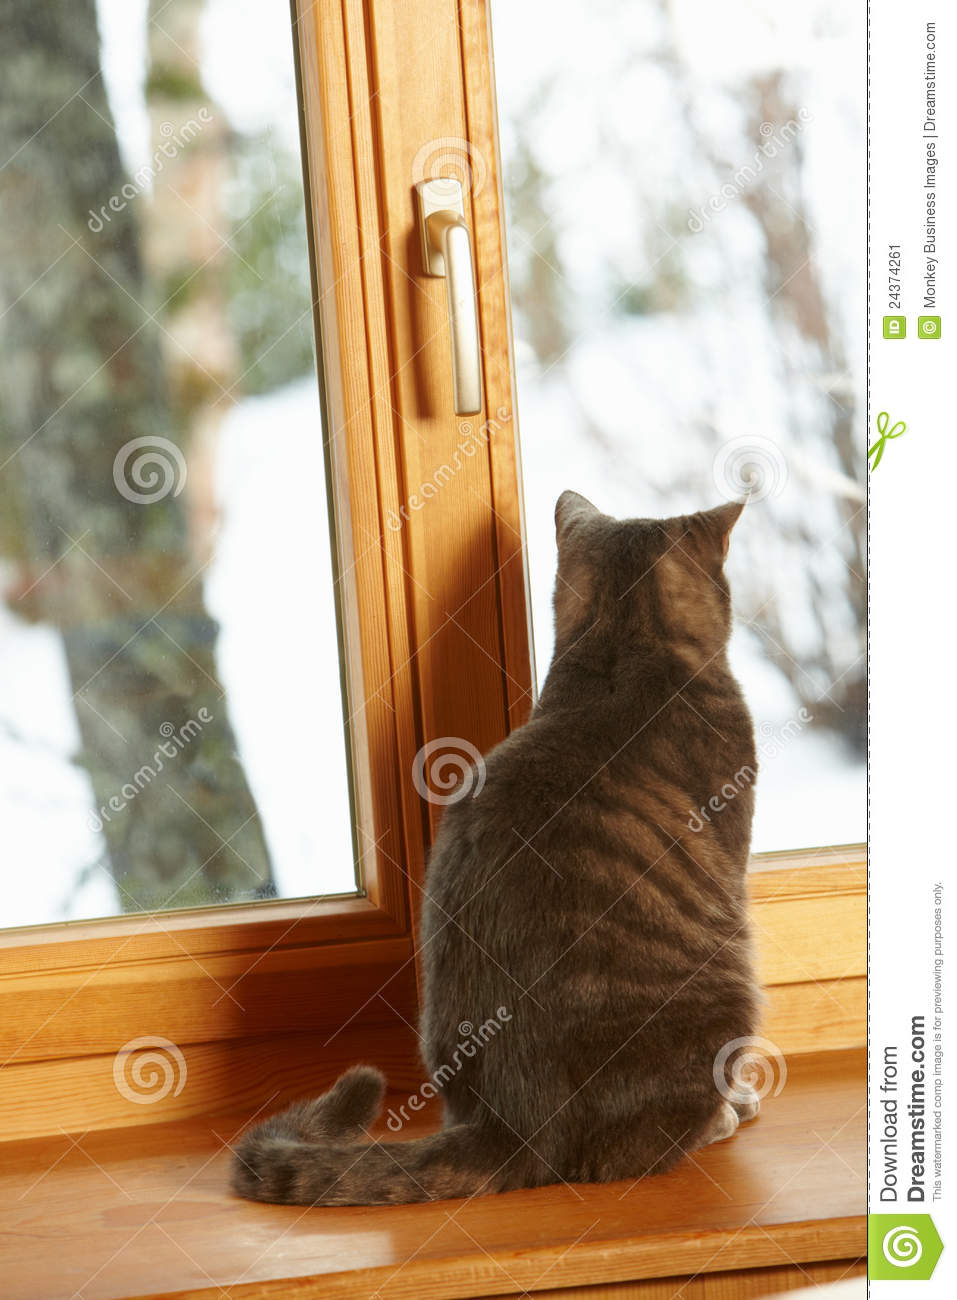 Cat Sitting On Window Ledge Looking At Snowy View Royalty